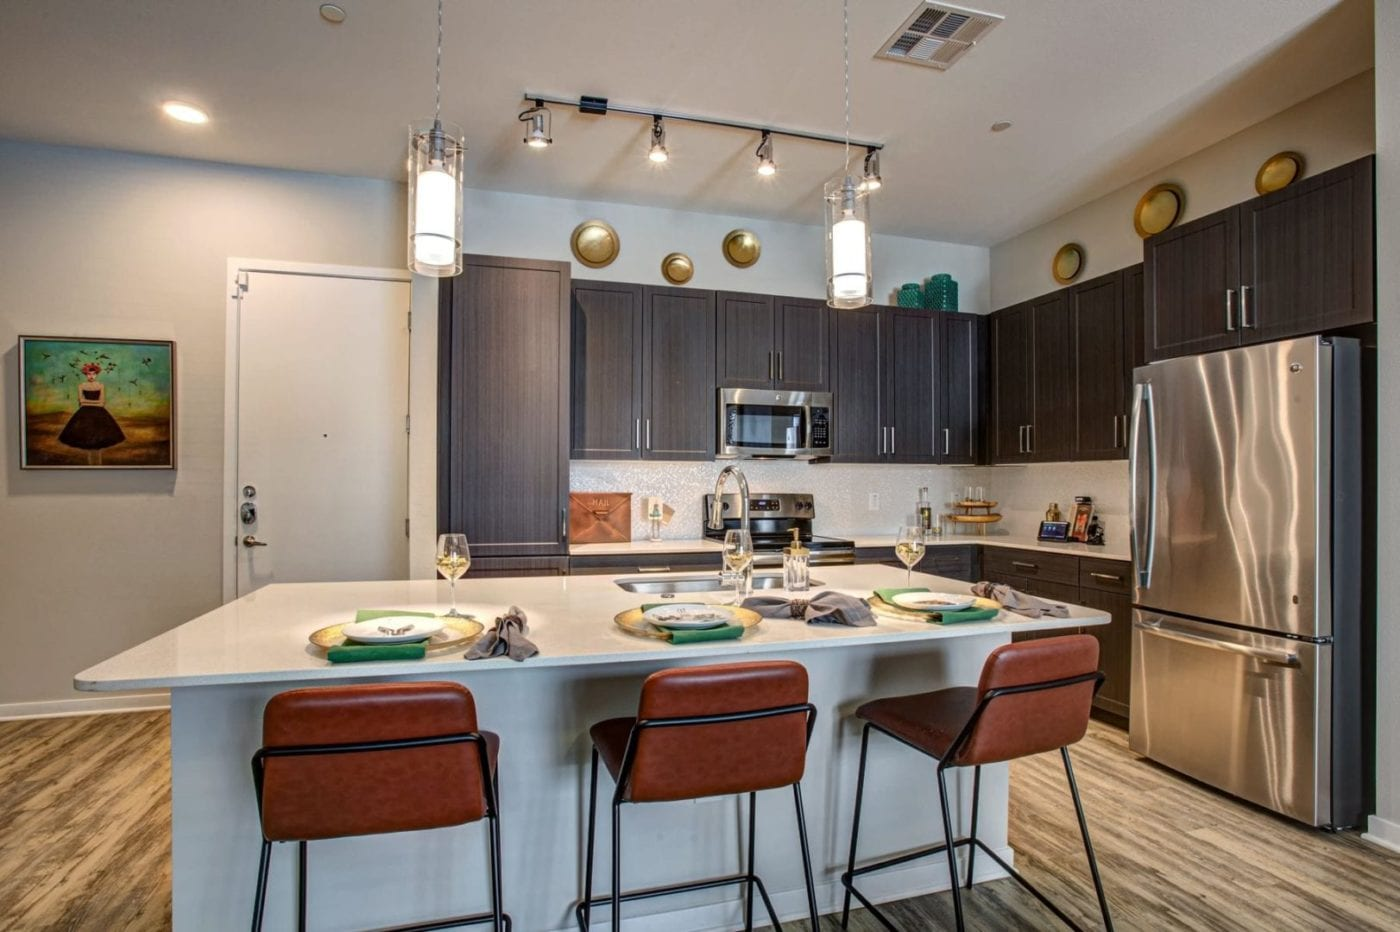 Apartments in Phoenix, AZ - Kitchen with Stainless Steel Appliances and Large Bartop Island